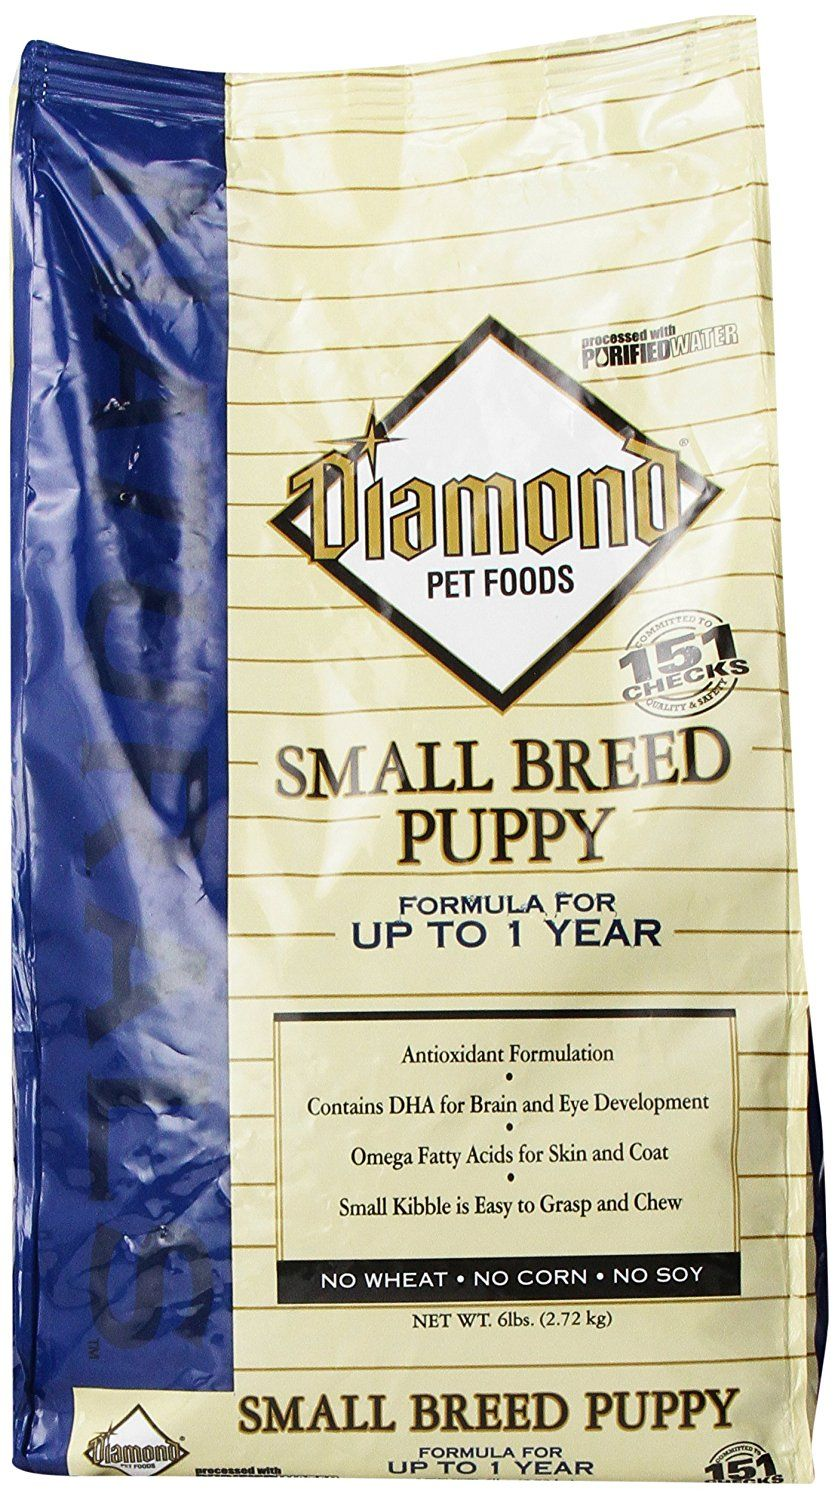 Diamond naturals dry food for puppy small breed puppy